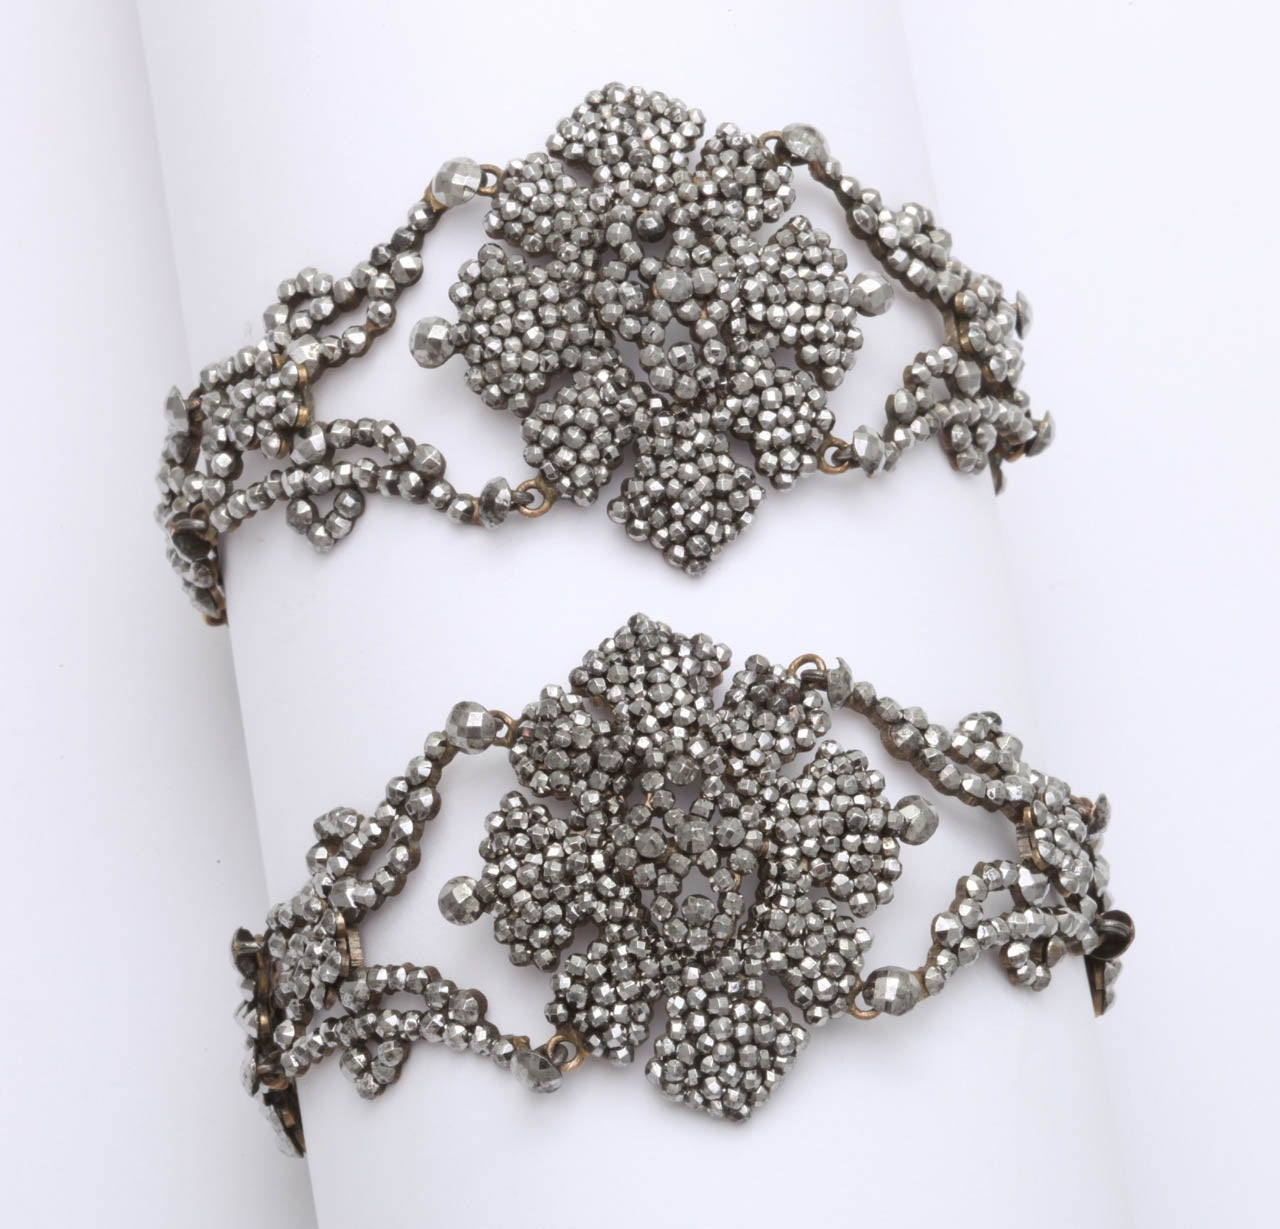 Two are better than one when you find a rare pair of cut steel bracelets made of tightly clustered cut steel rivets that form flowers and bows along the seven inch length these Georgian bracelets. The rivets are so small that they could be poppy